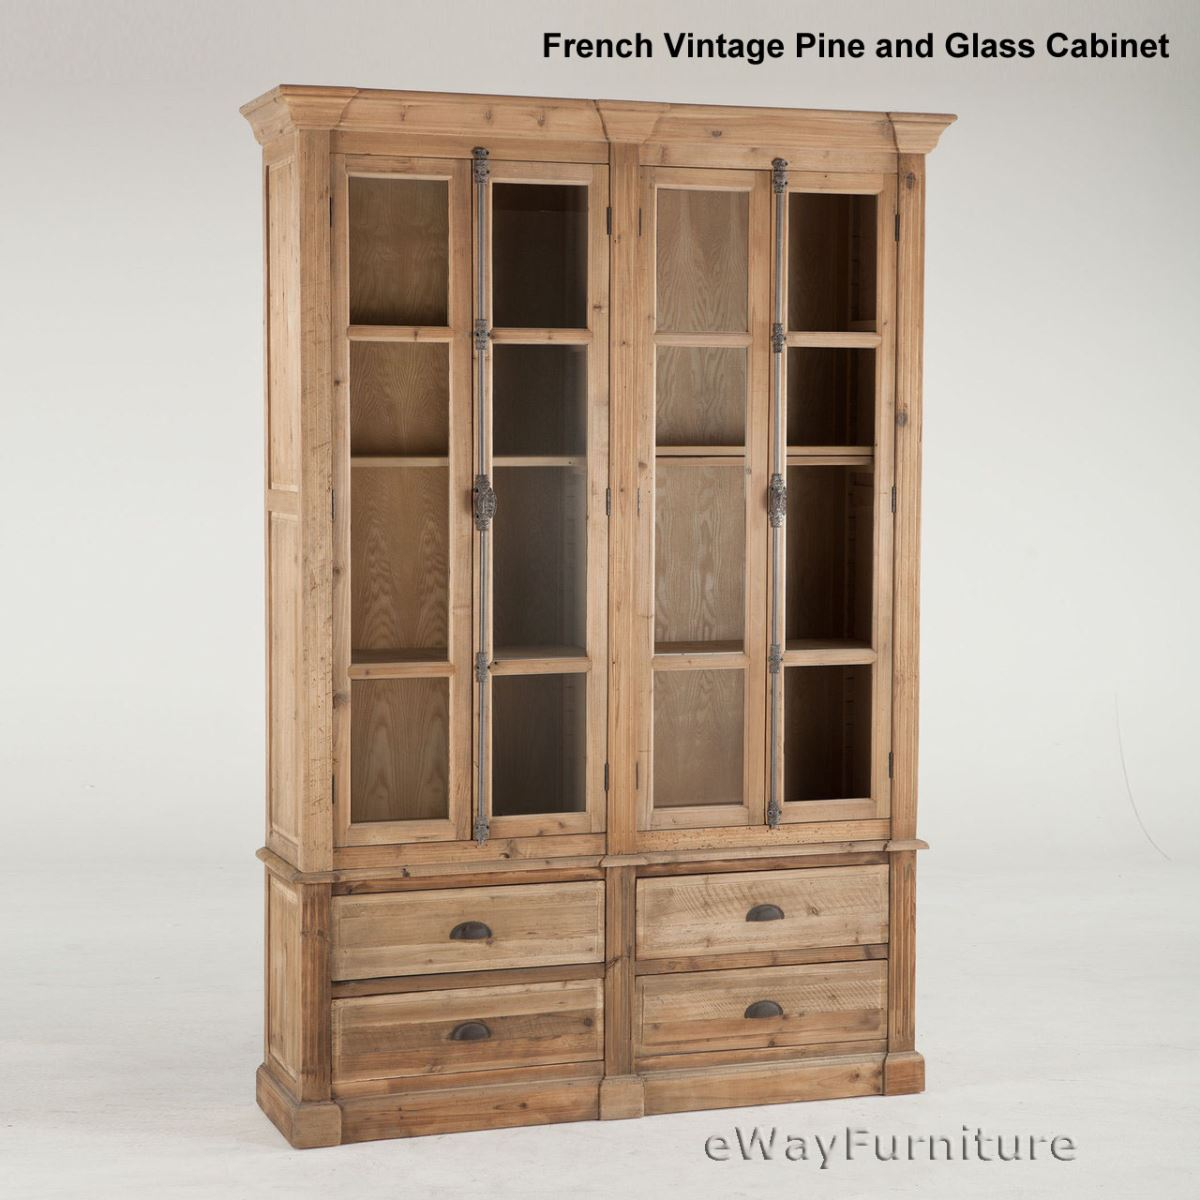 Antique Dining Room Chairs For Sale French Vintage Pine And Glass Cabinet